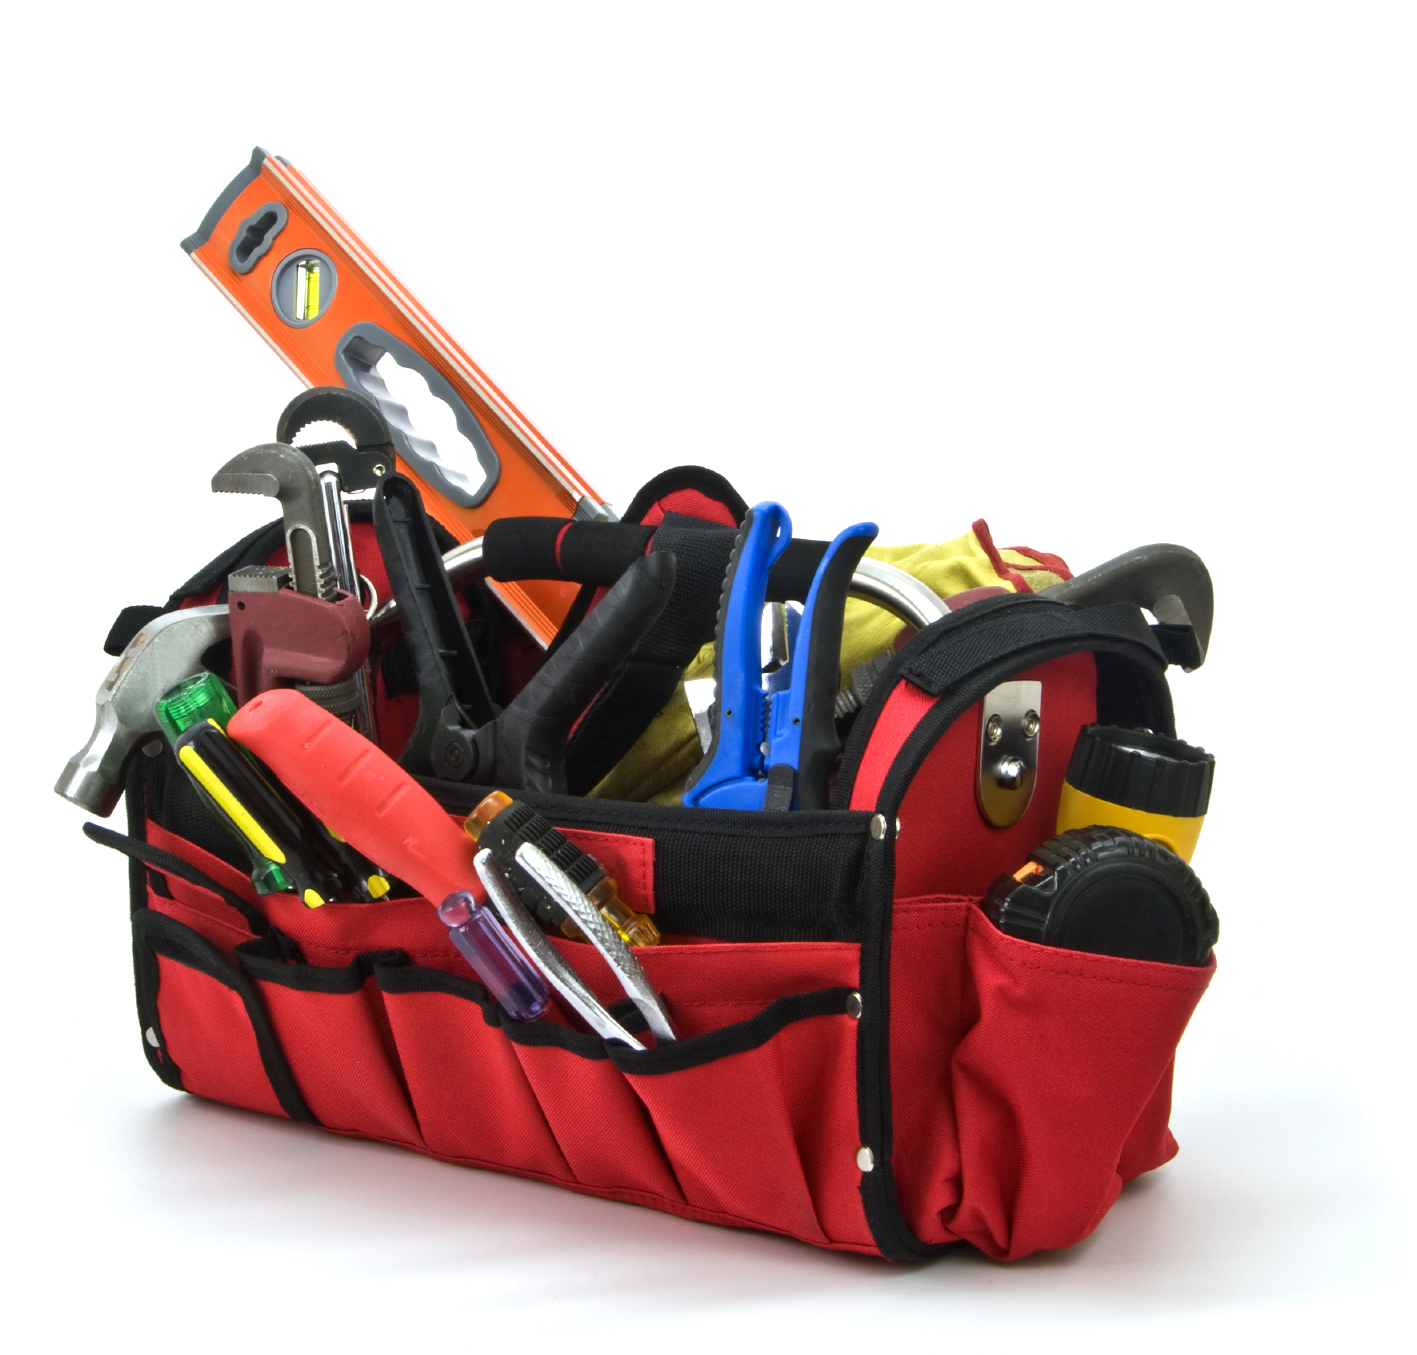 Home maintenance inspection tools